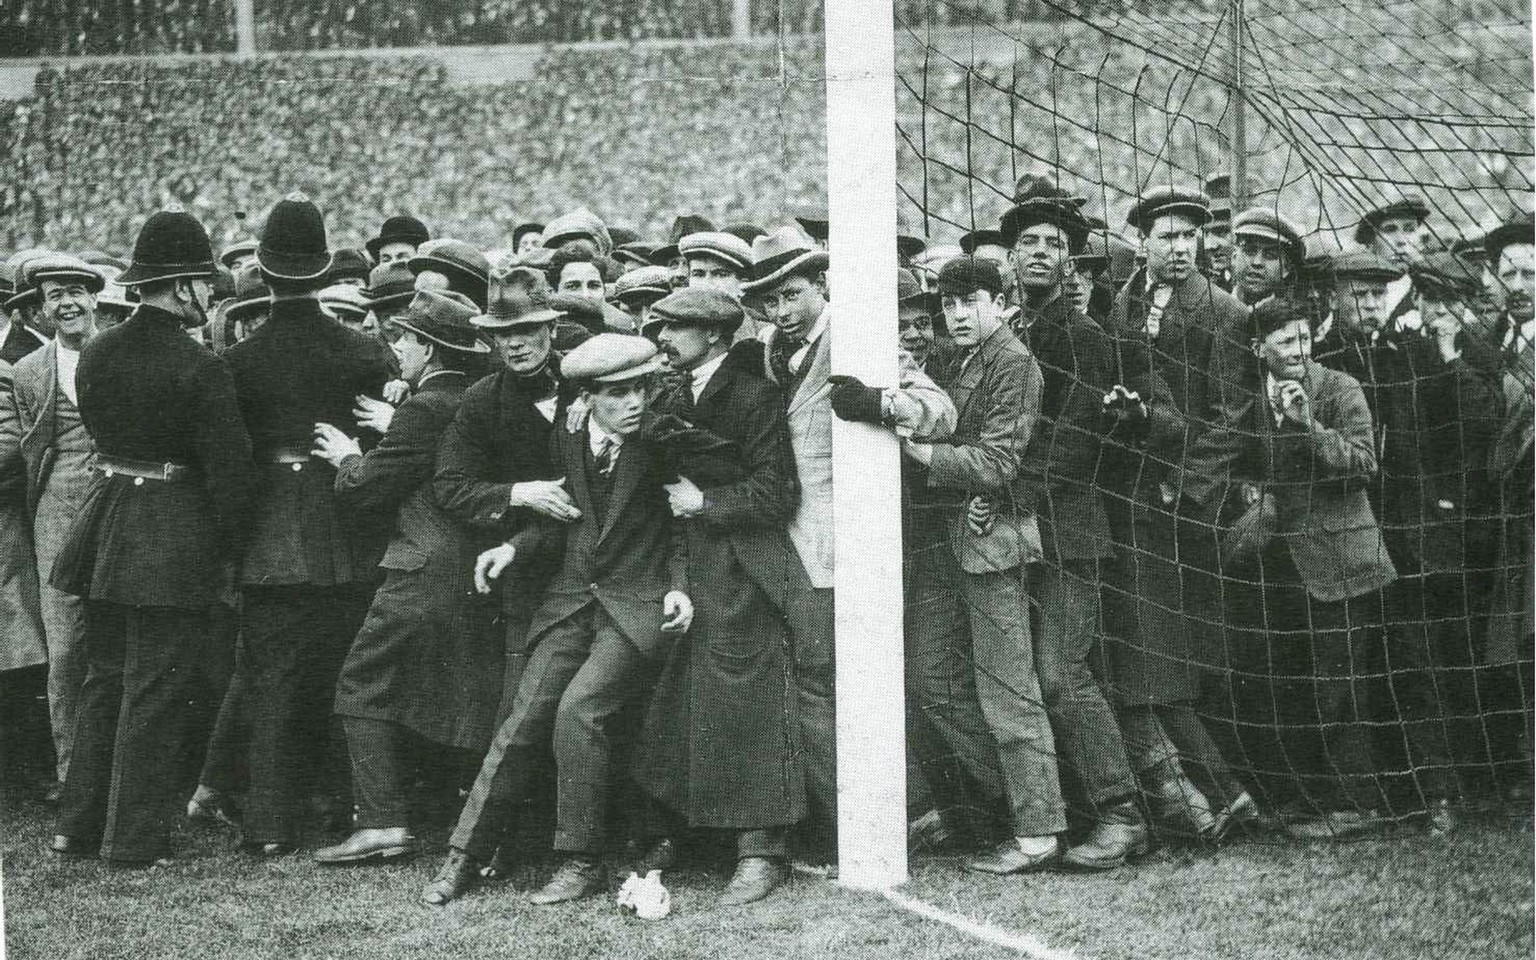 White Horse Final Wembley 1923 Fans am Pfosten